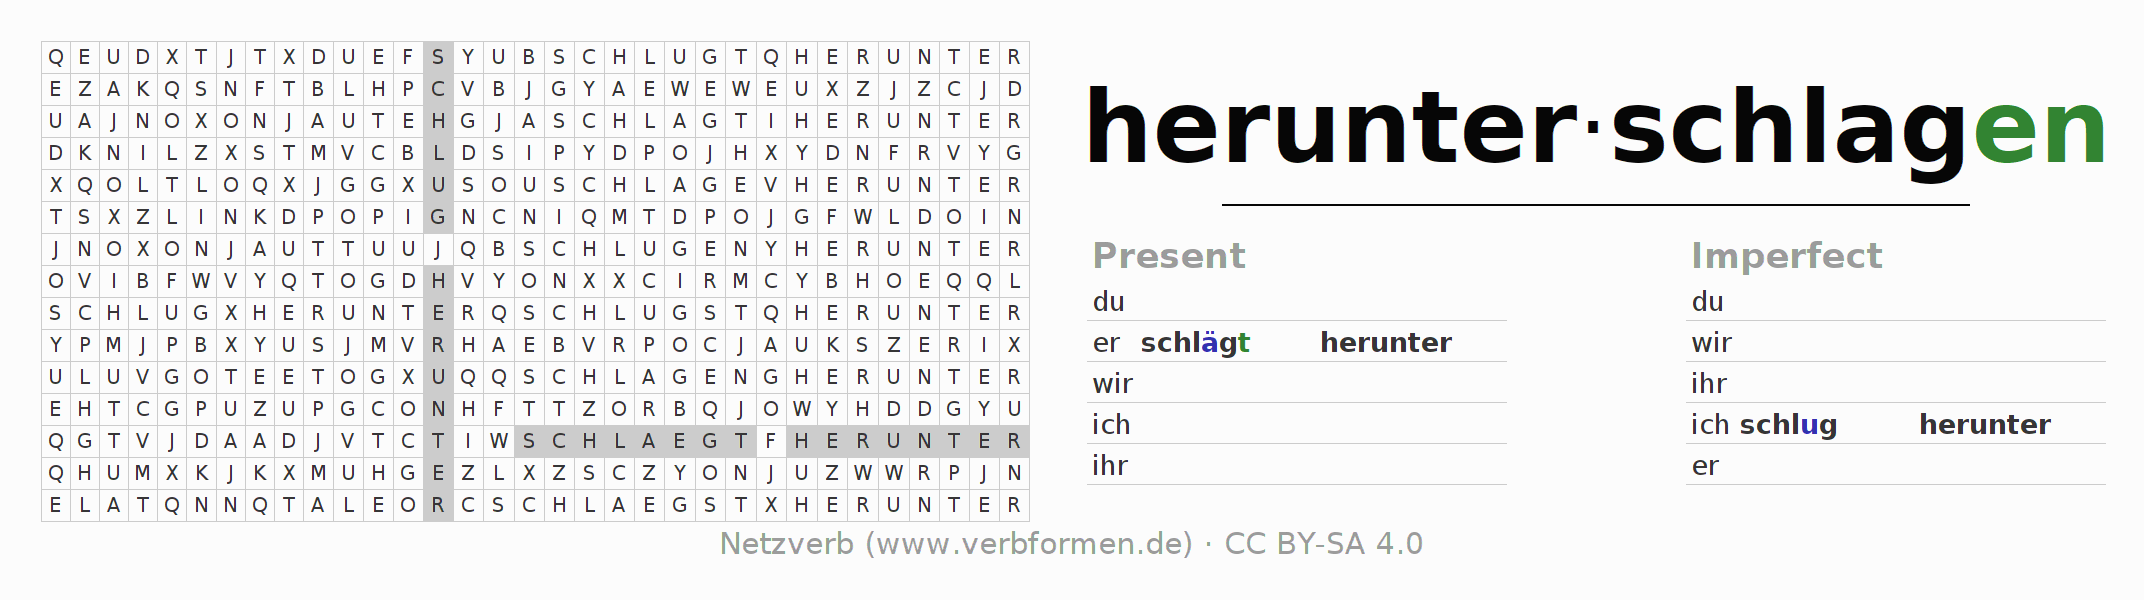 Word search puzzle for the conjugation of the verb herunterschlagen (hat)